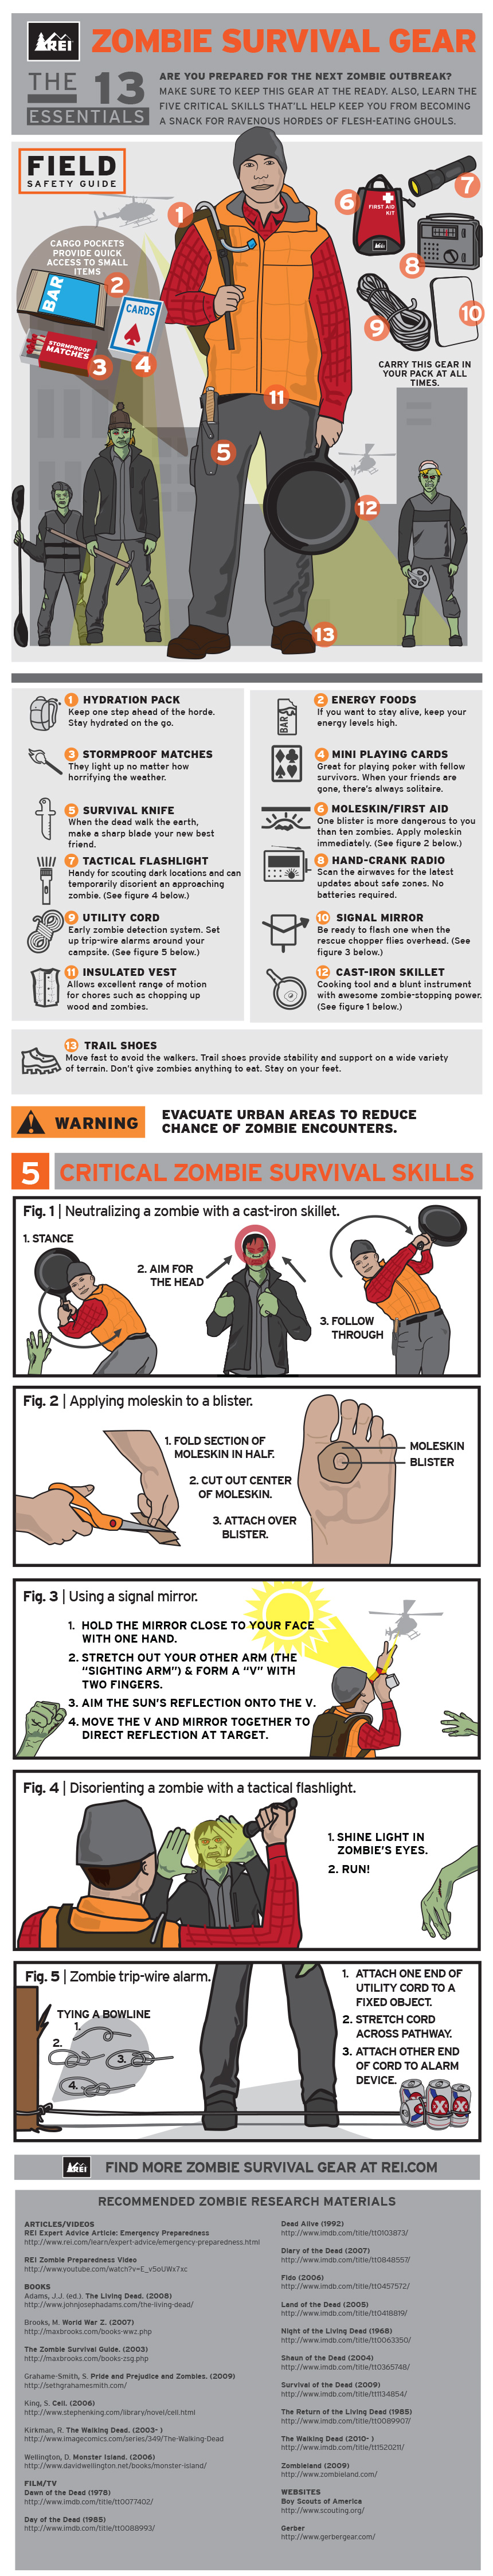 13 Essential Tools for Surviving a Zombie Apocalypse